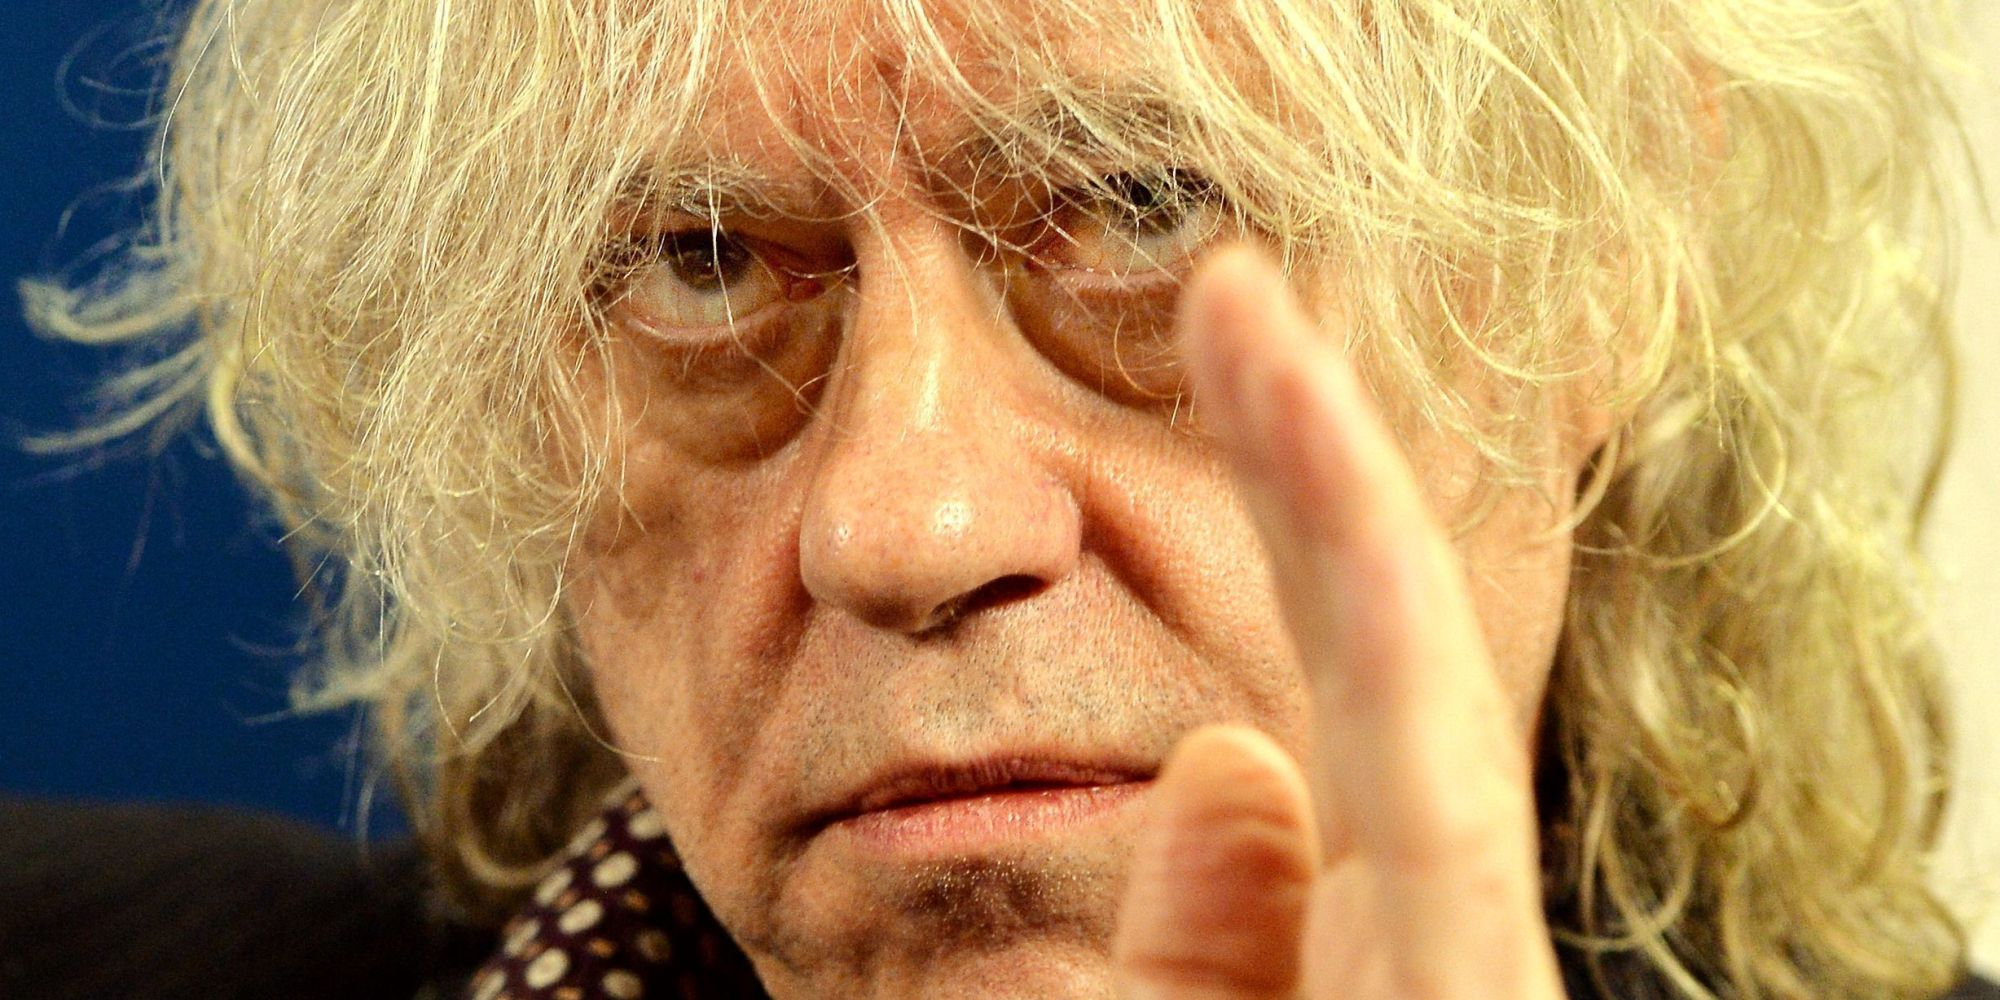 Bob Geldof Screensavers